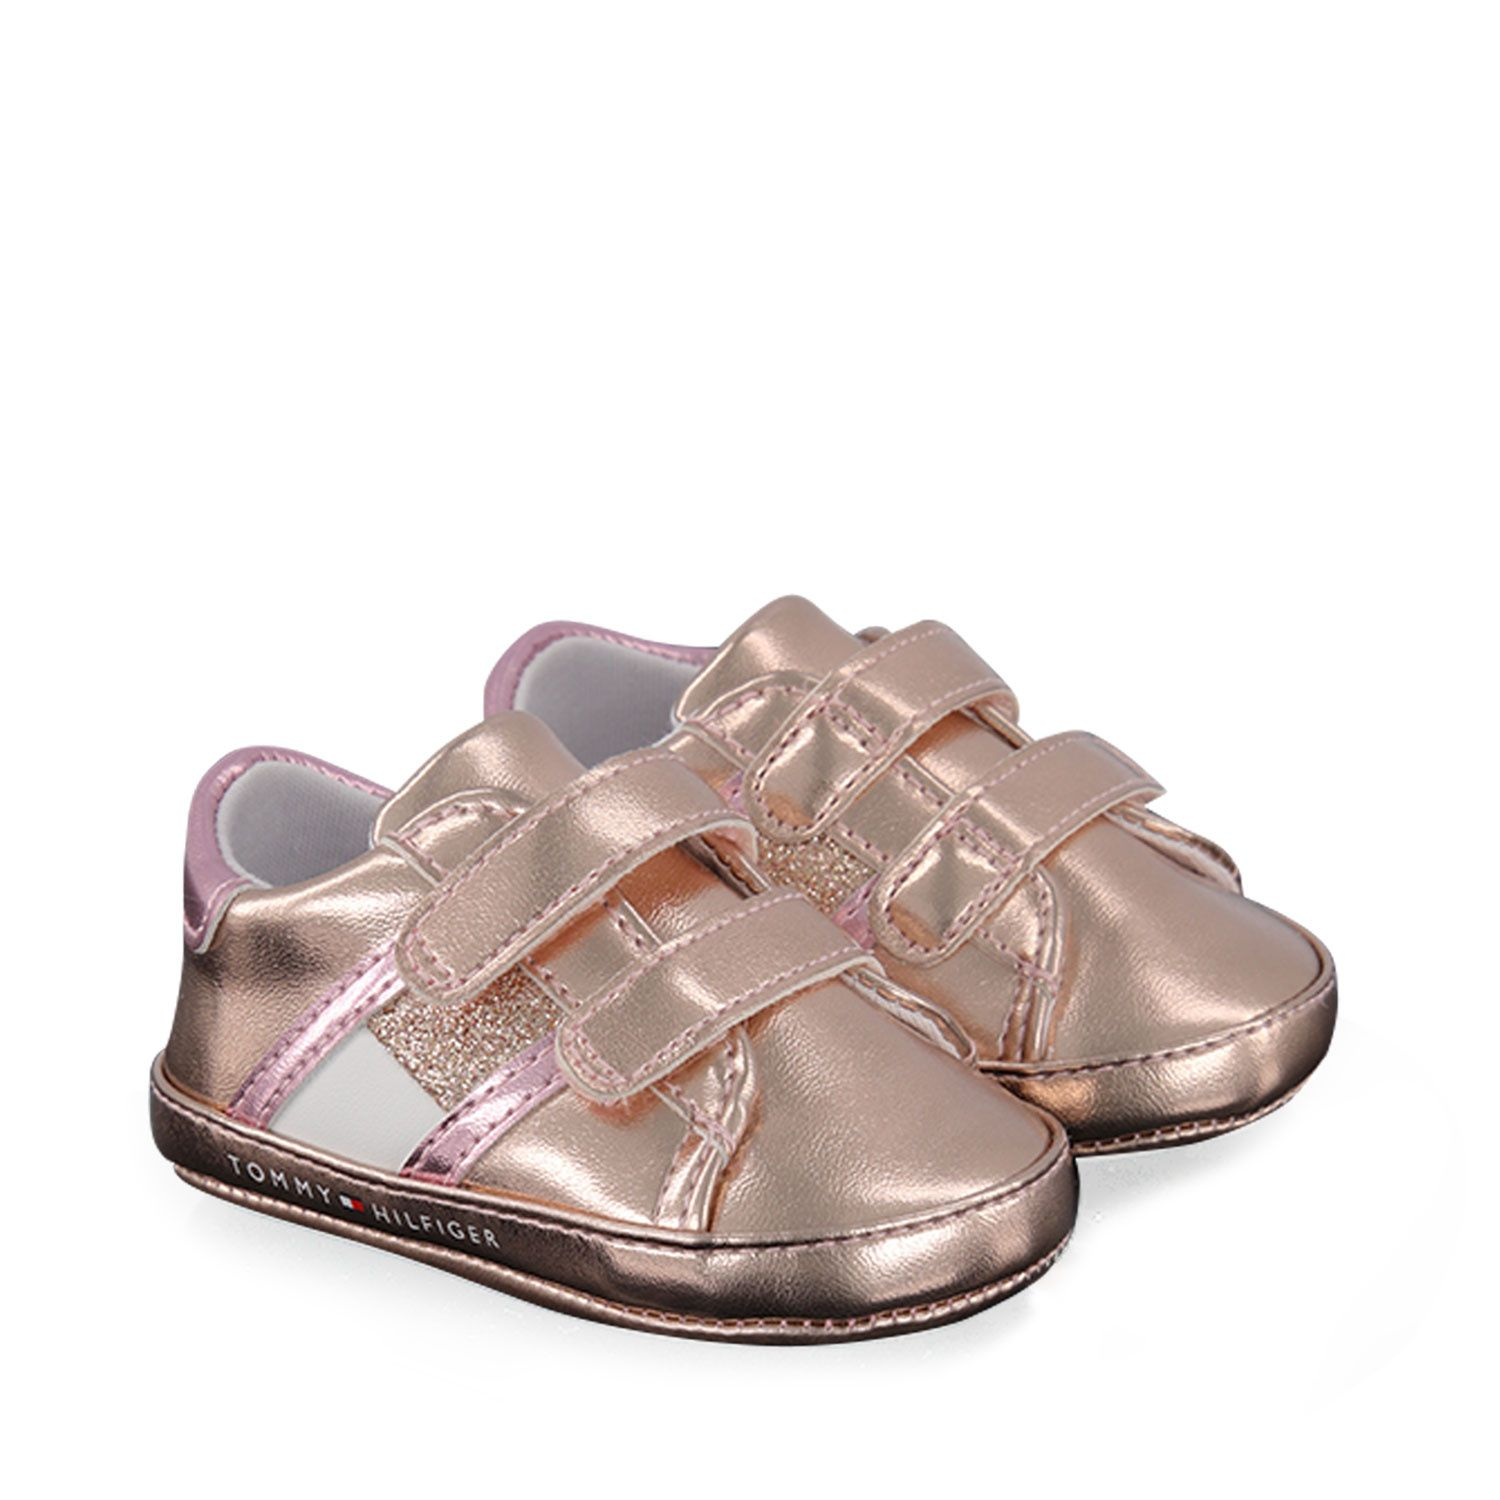 Picture of Tommy Hilfiger 30770 baby sneakers rose